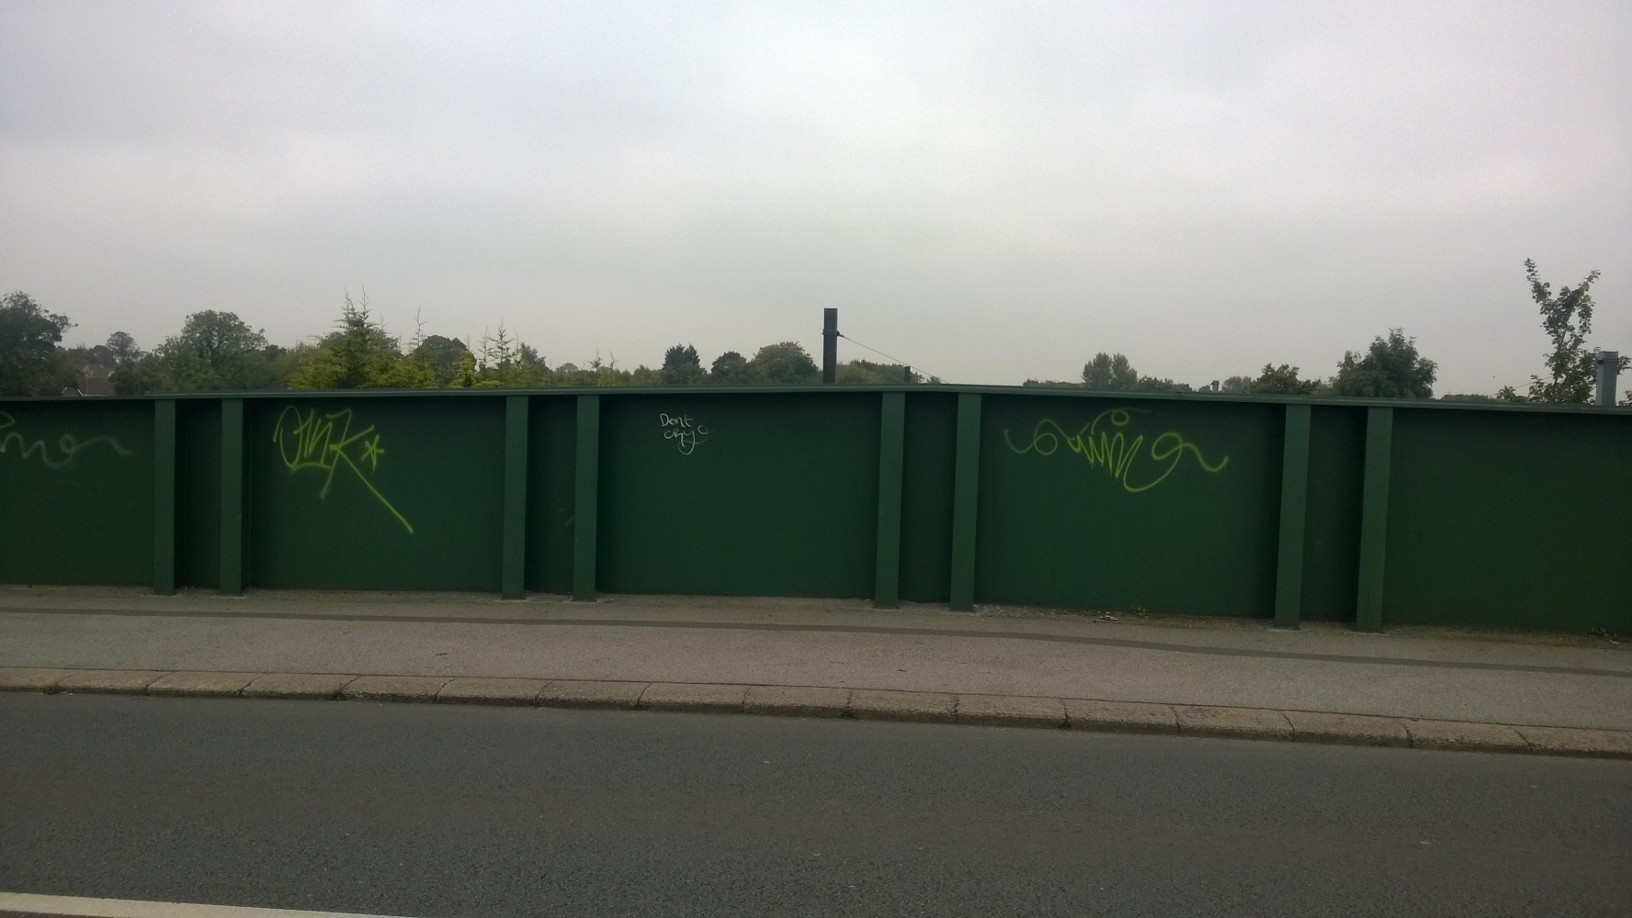 Graffiti has been daubed on both sides of the road